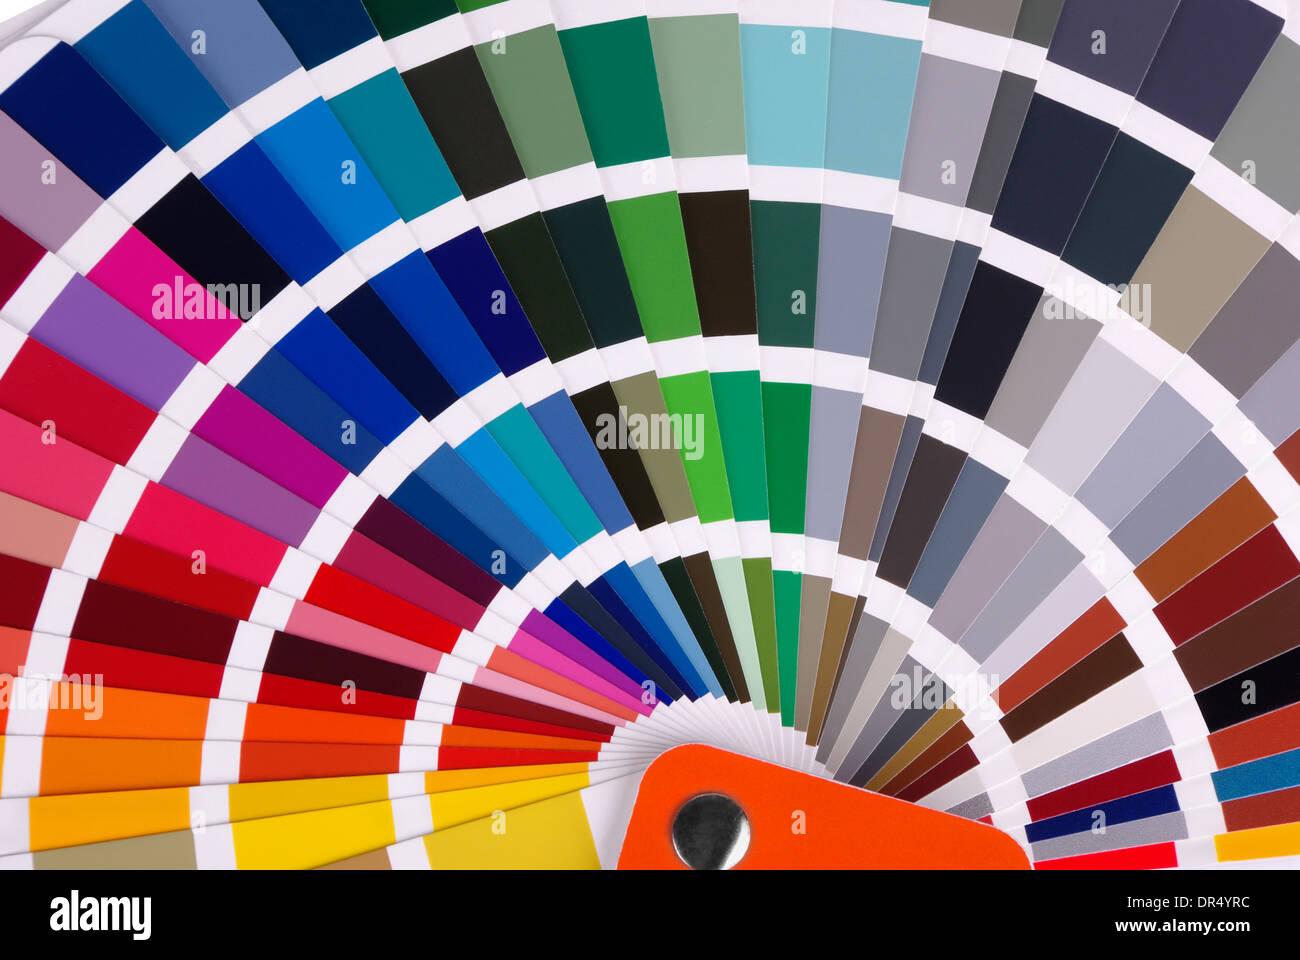 Color chart close-up - Stock Image